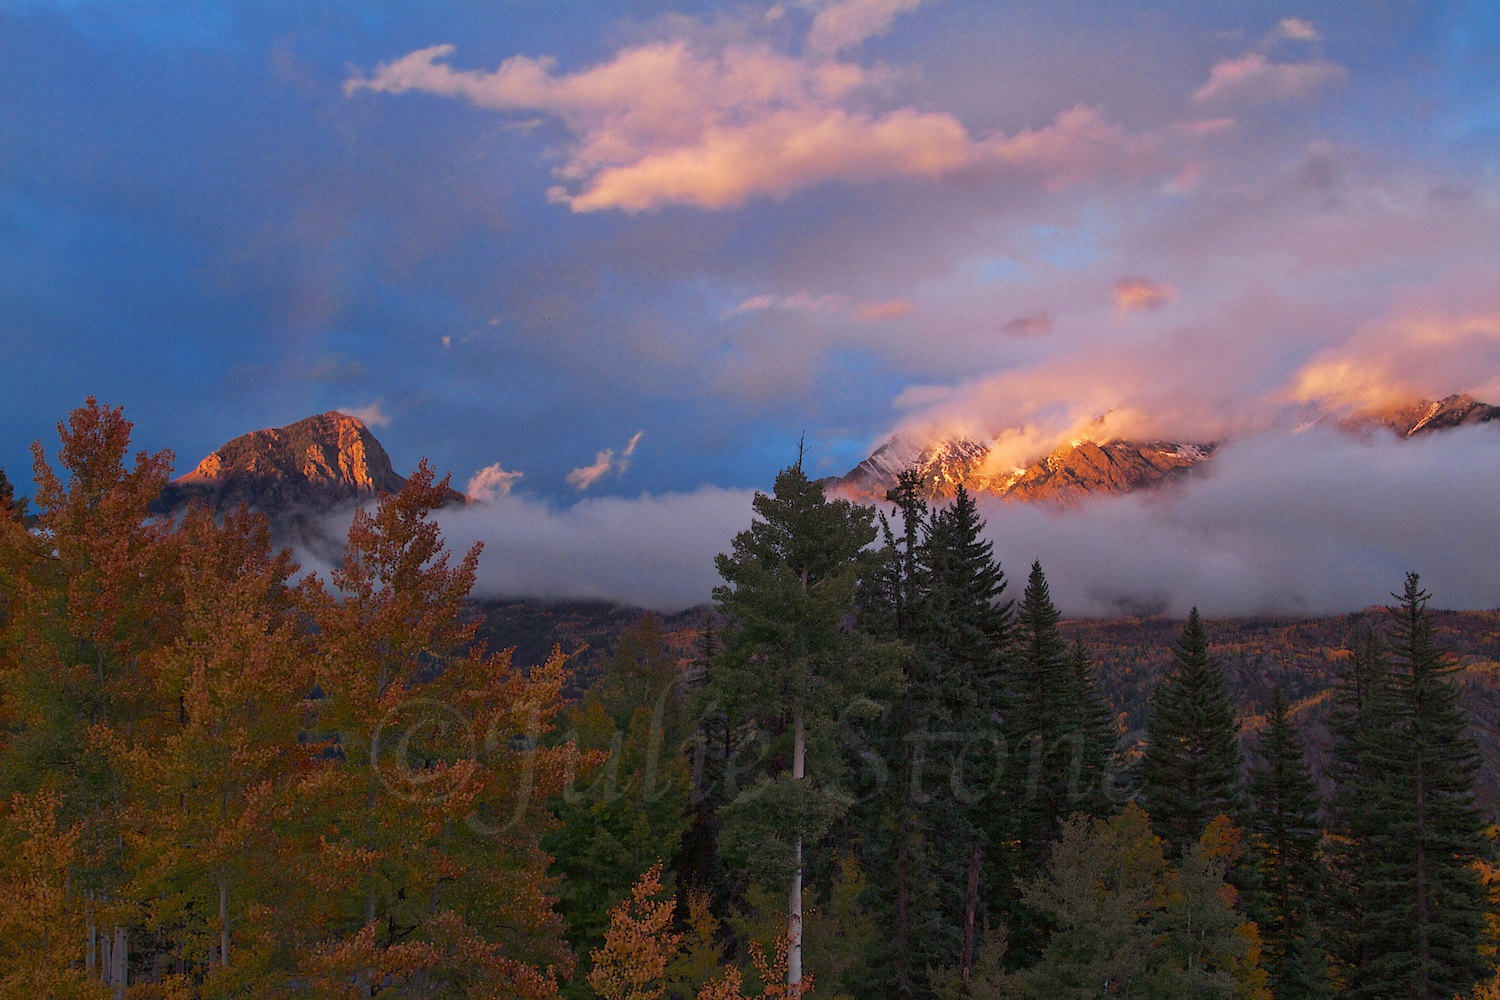 FALL SUNSET OVER SPUD & TWILIGHT PEAKS